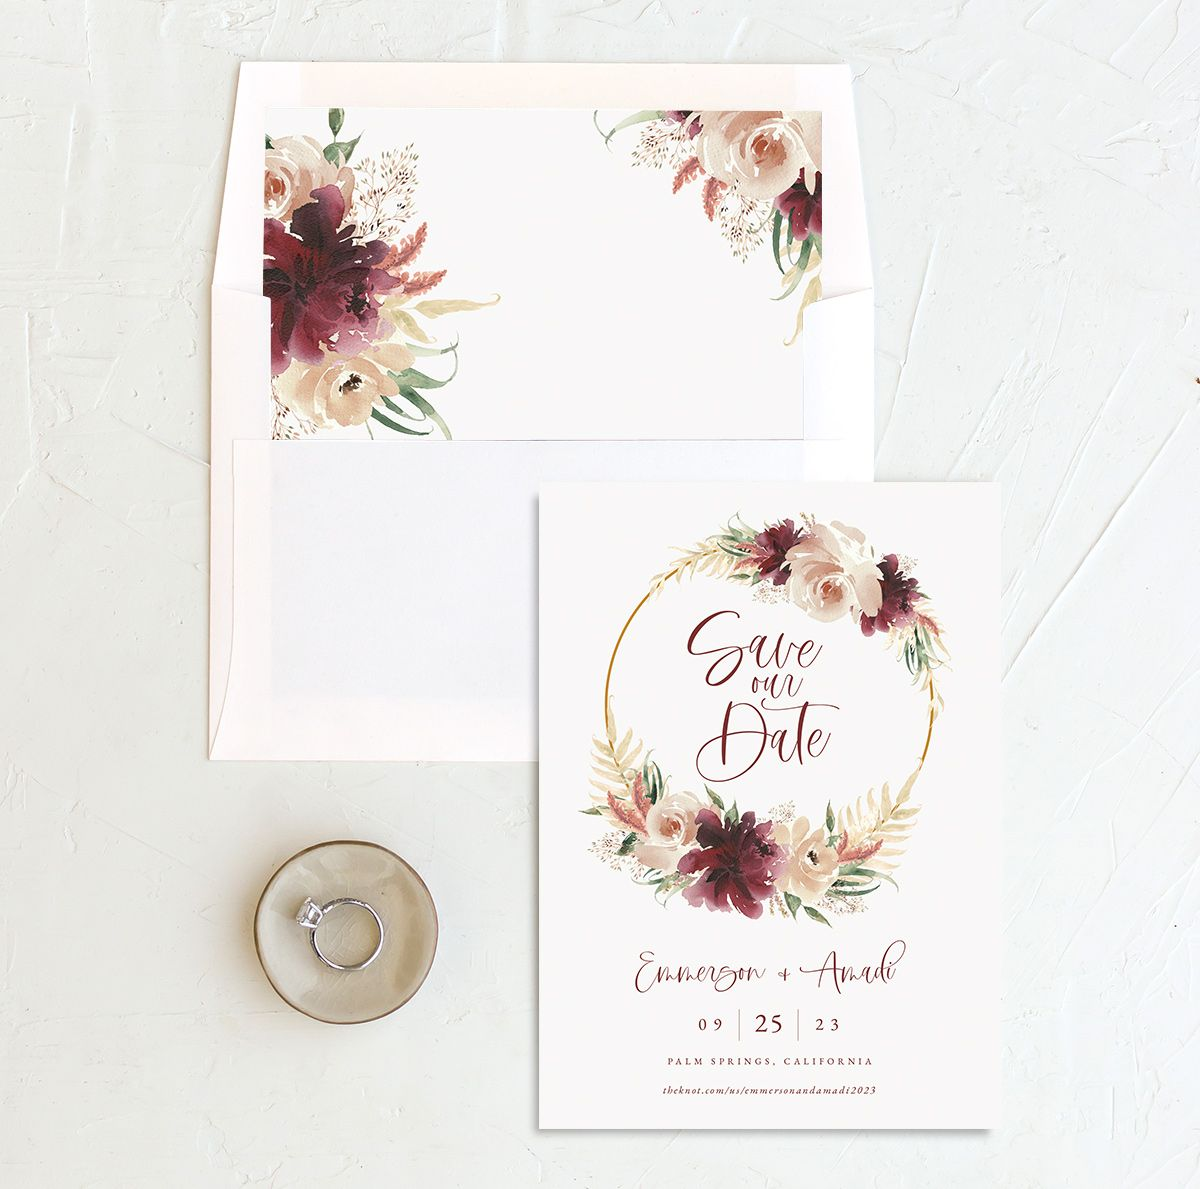 Floral Wreath save the date with liner